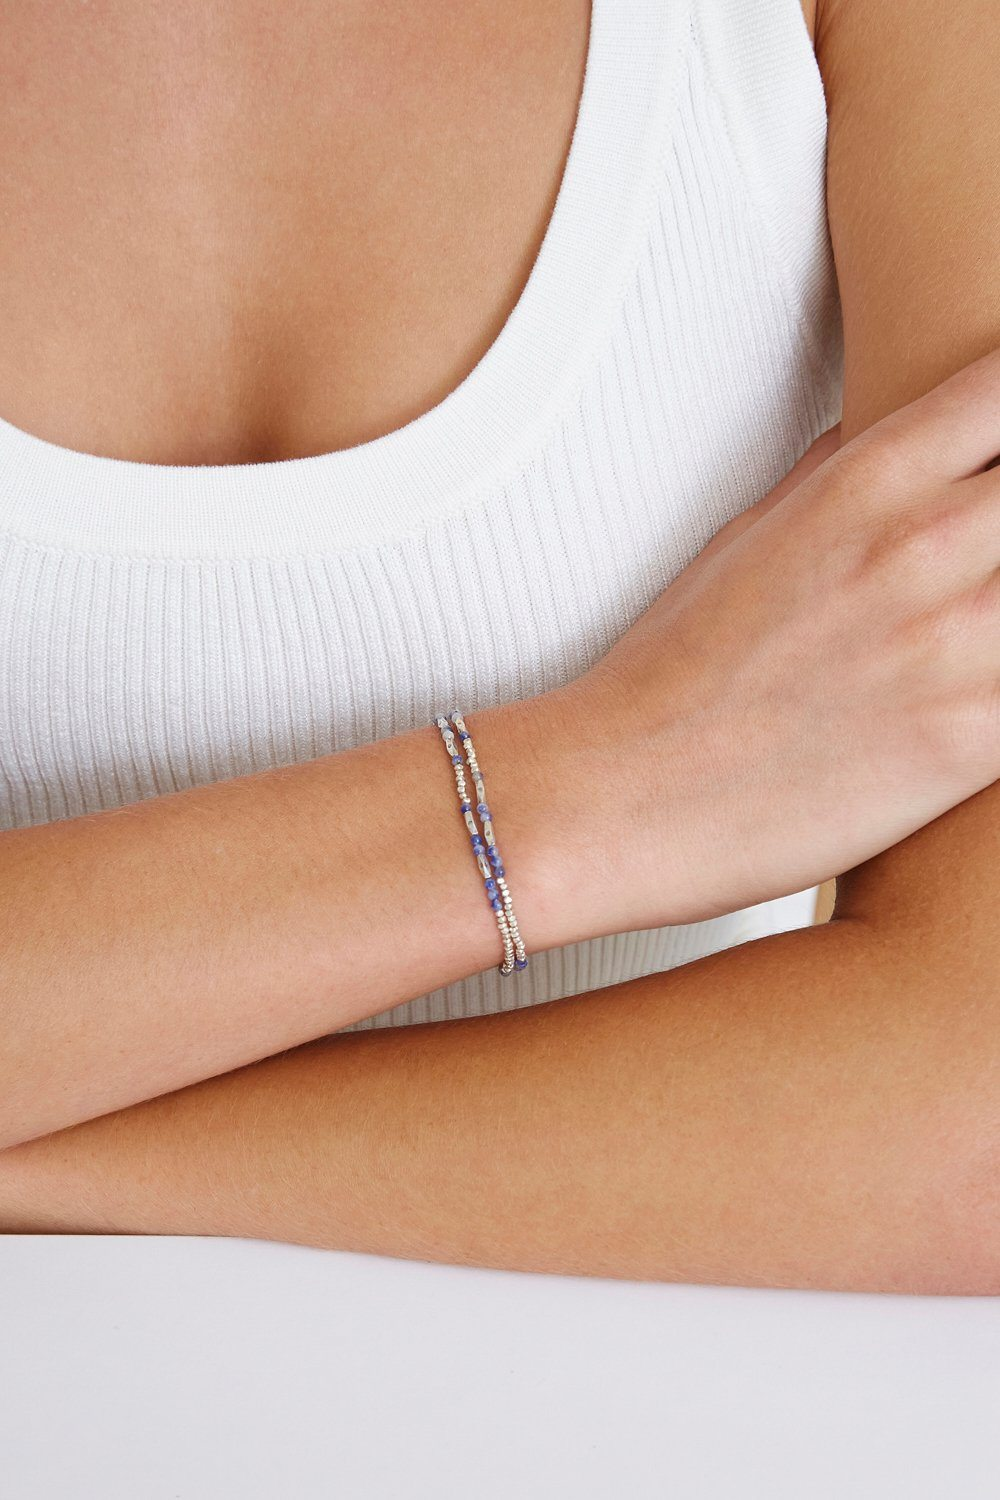 Sodalite and Etched Silver Wrap Bracelet